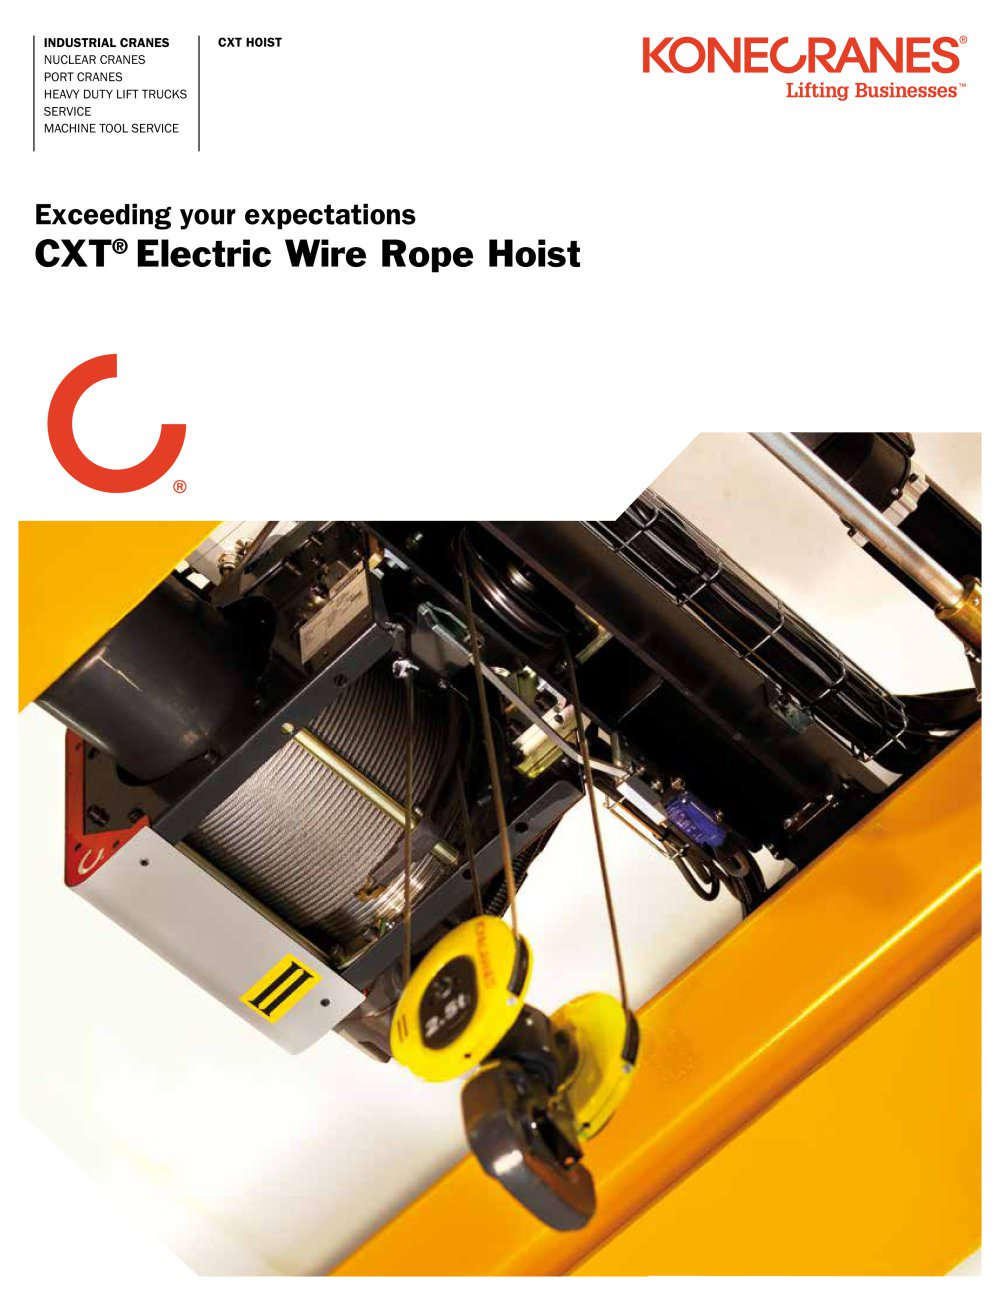 CXT® Electric Wire Rope Hoist - 1 / 5 Pages